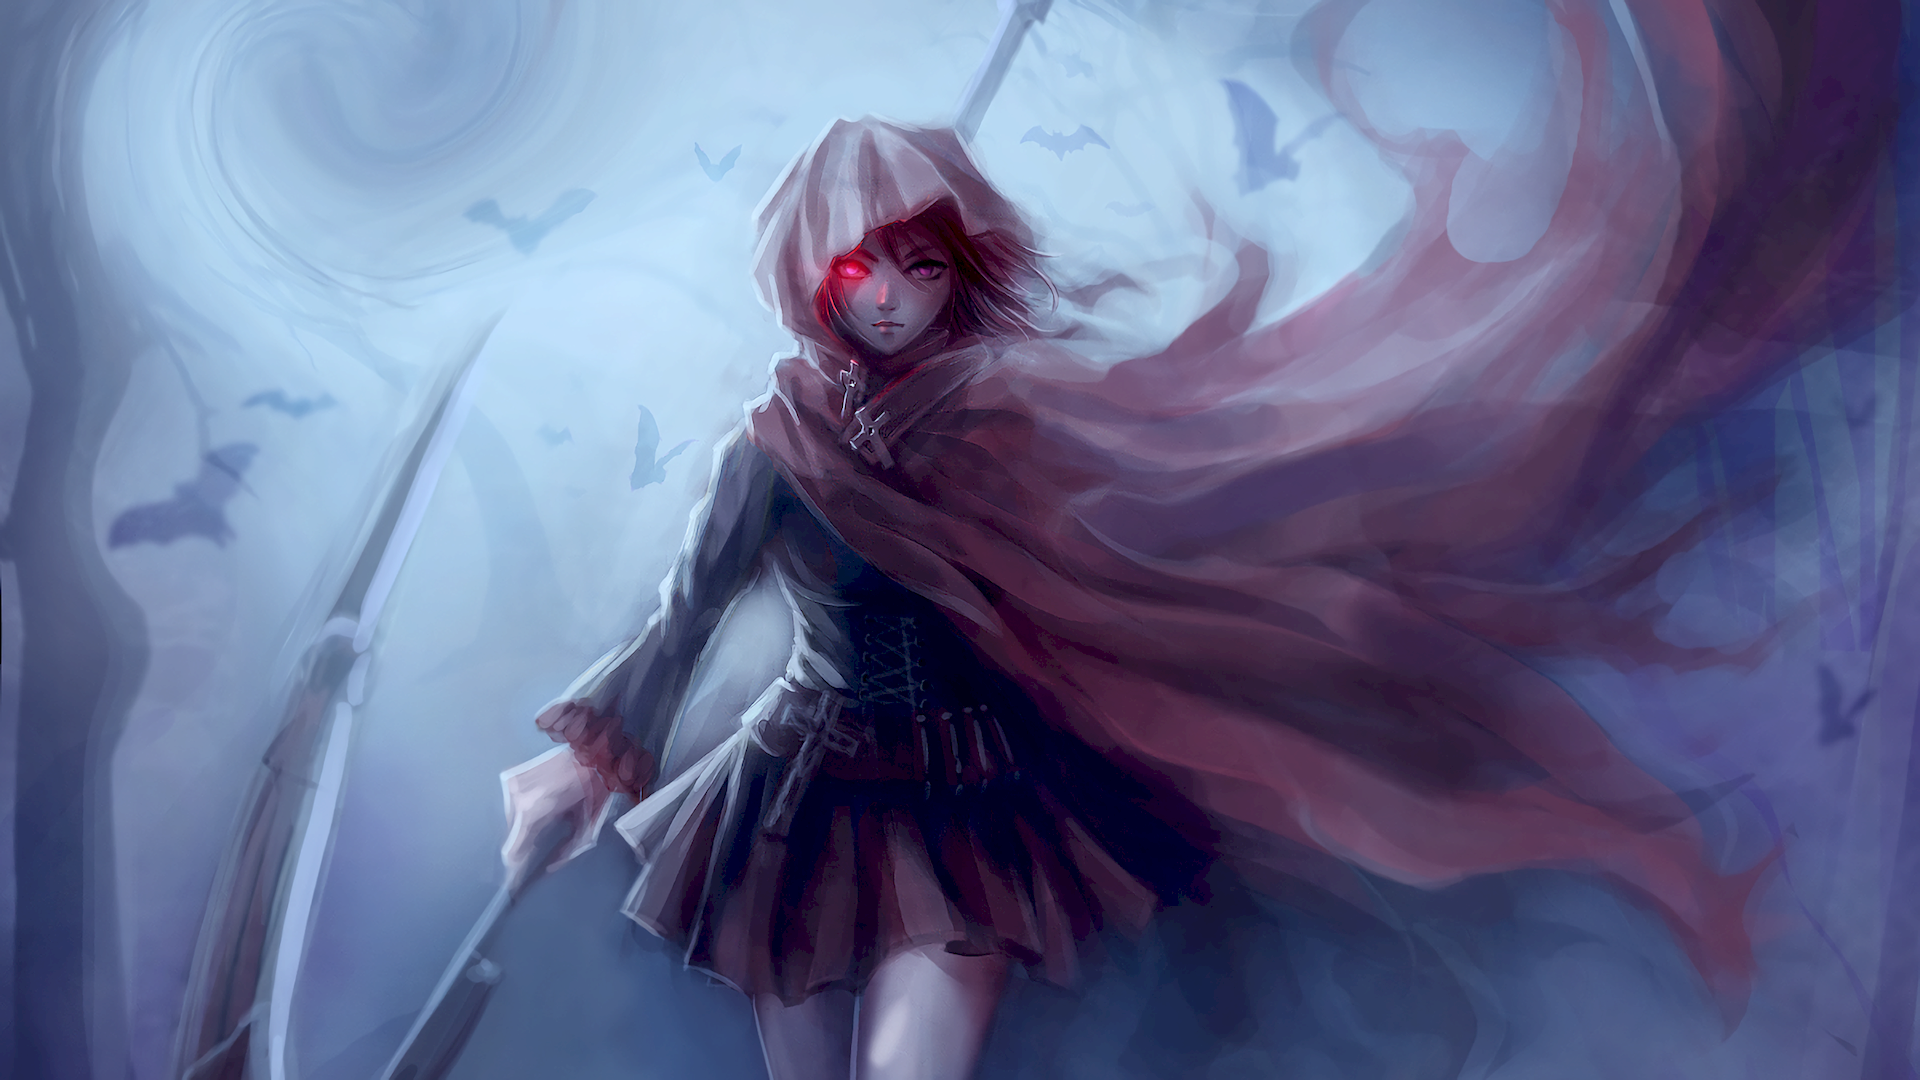 Rwby hd wallpaper background image 1920x1080 id - Anime girl wallpaper for mobile ...